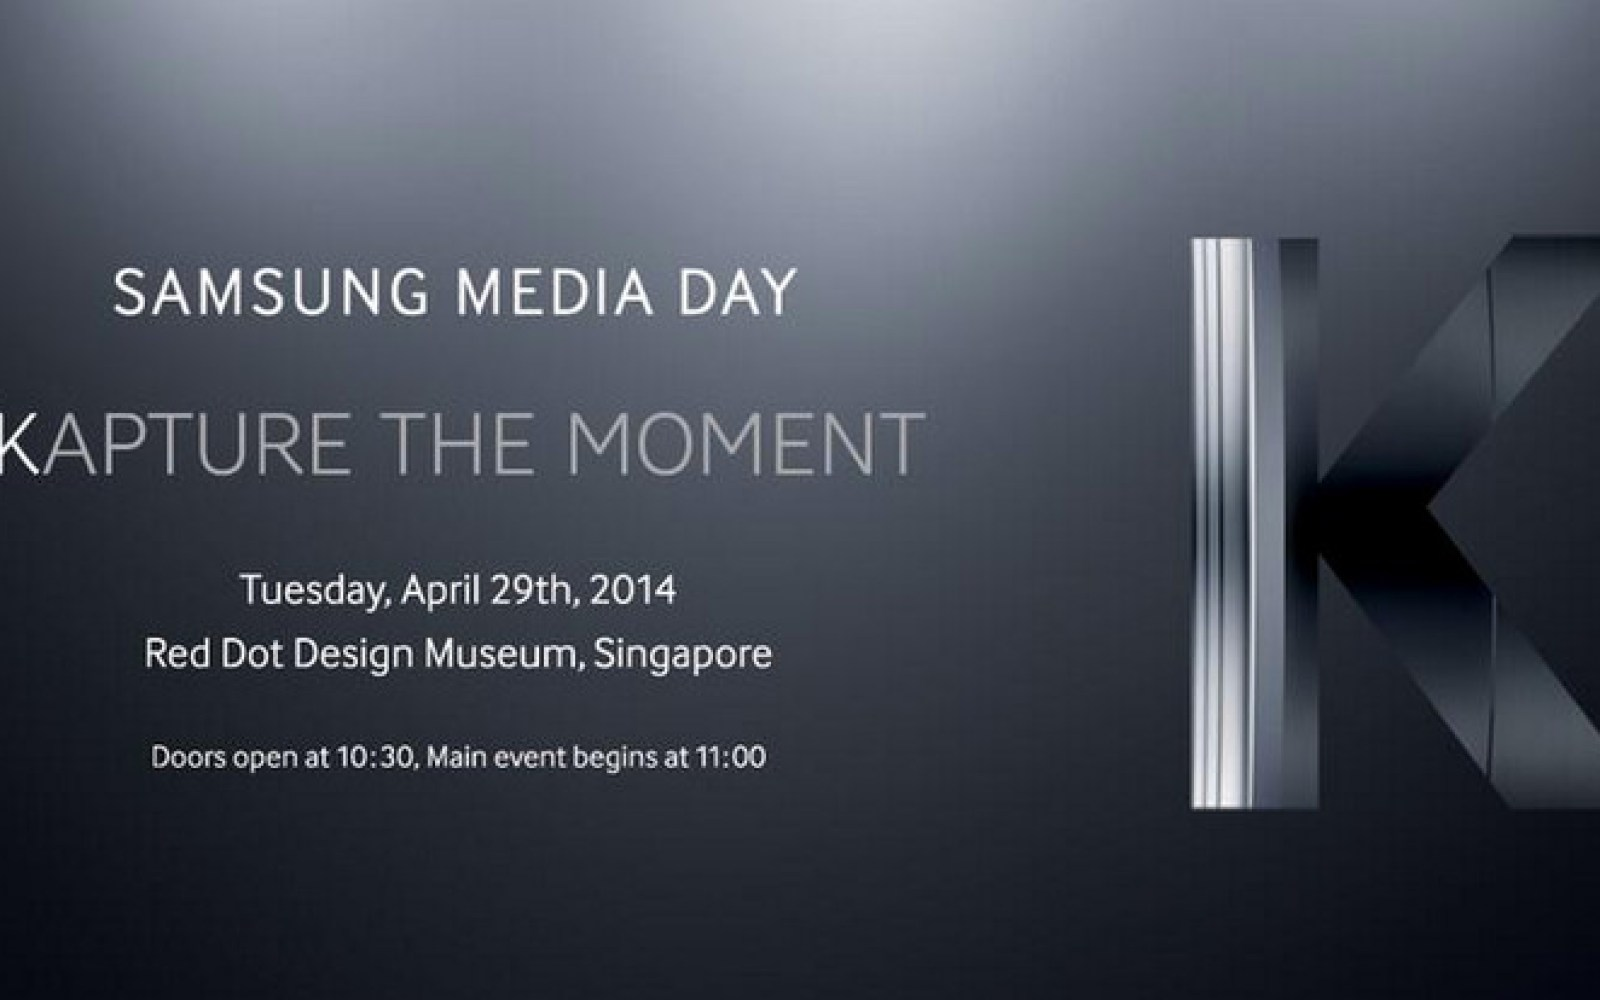 Samsung Mobile Instagram teases Galaxy K camera phone announcement